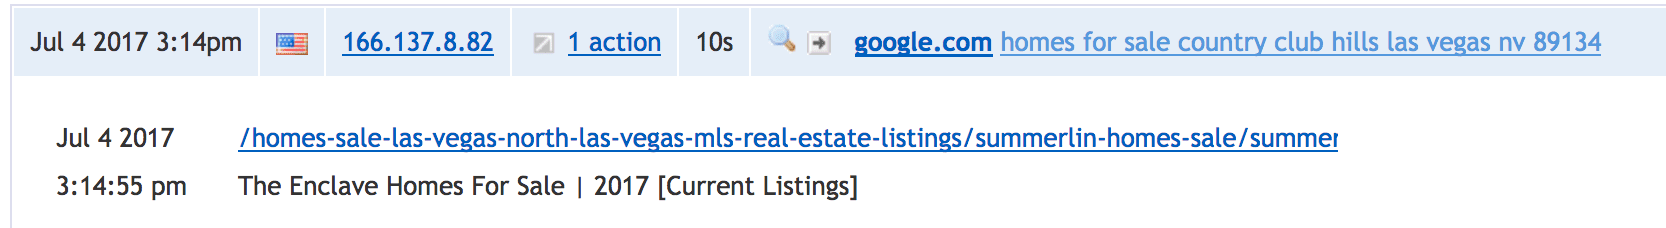 Clicky Analytics Detail Page showing Google.com Search Query for Country Club Hills